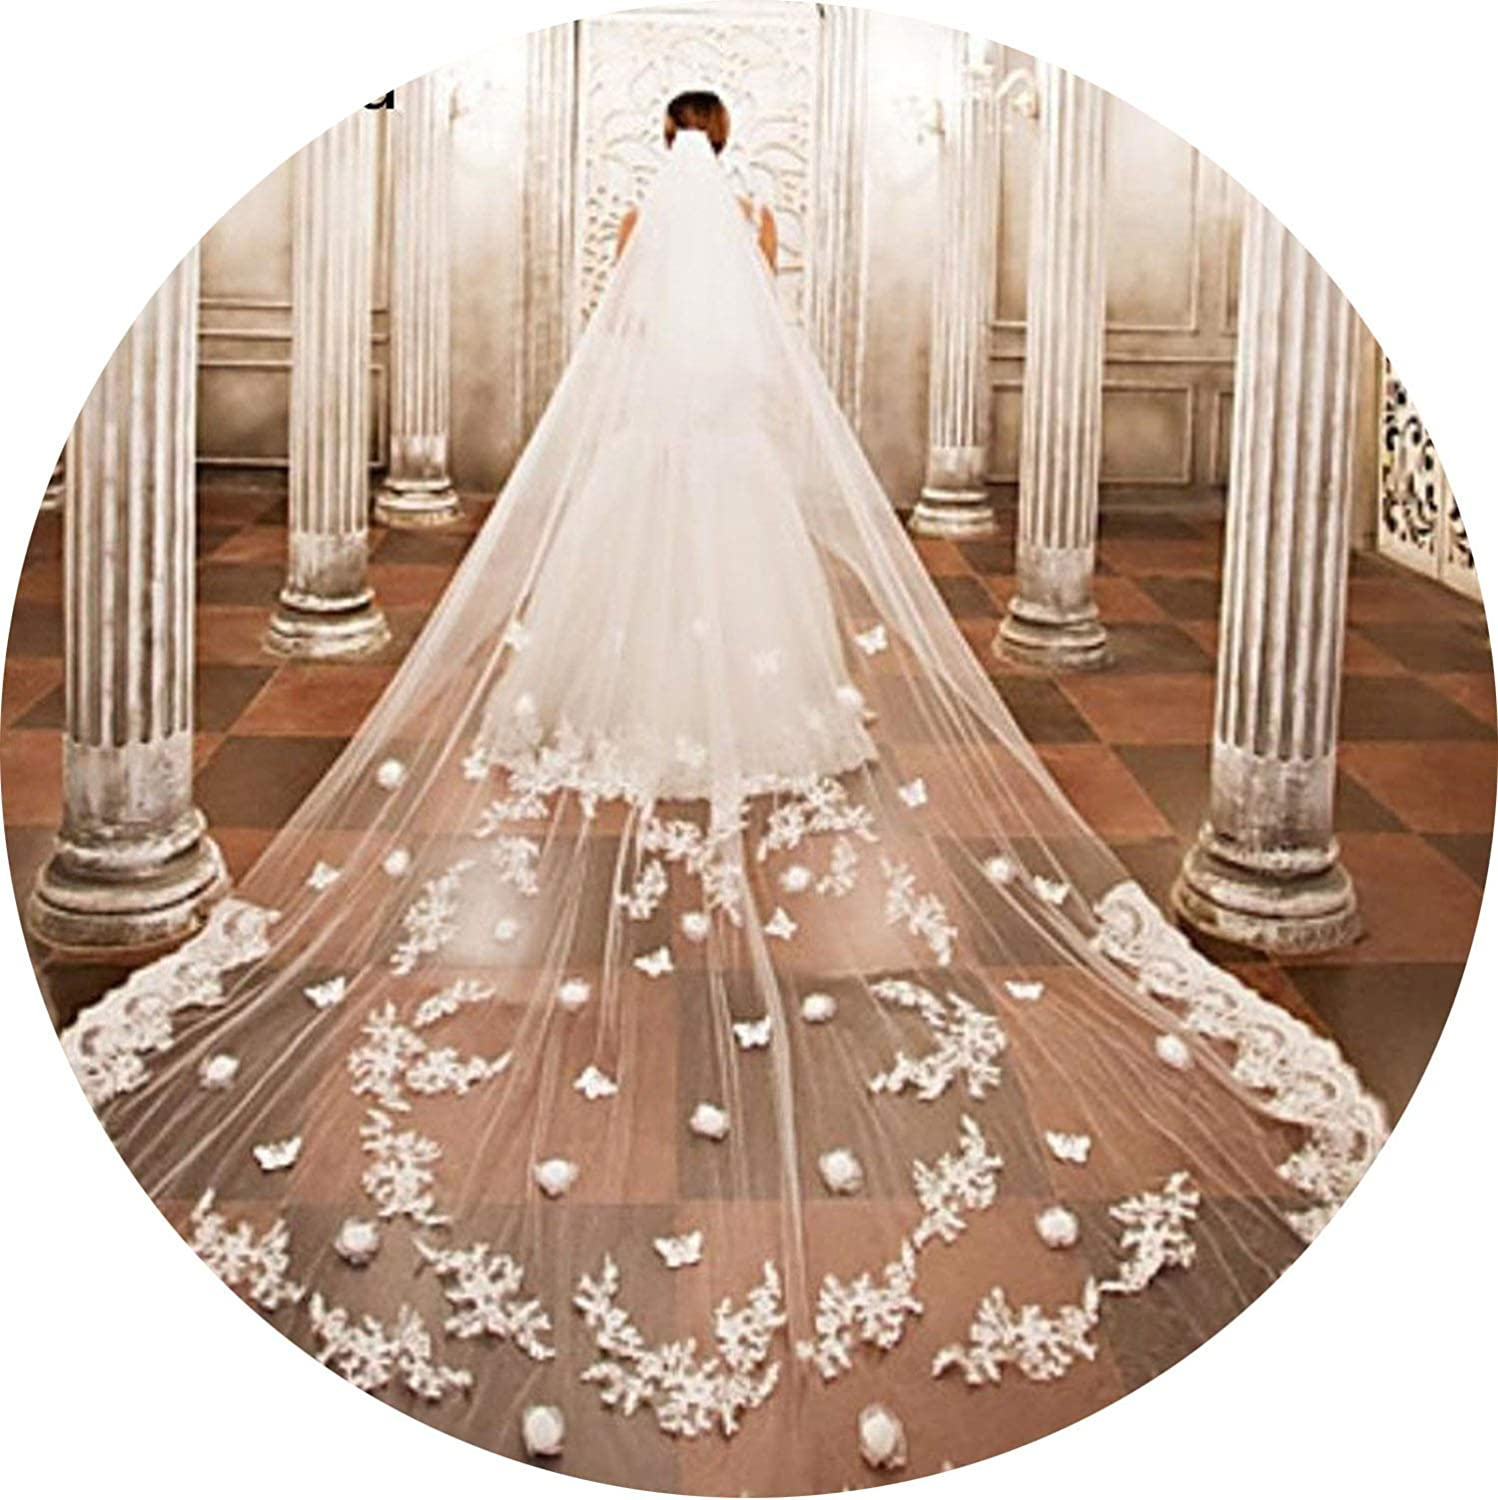 White Ivory One Tier 3M Long Wedding Veil Cathedral Length Lace Applique Netting Bridal Veil With Comb,White,500Cm